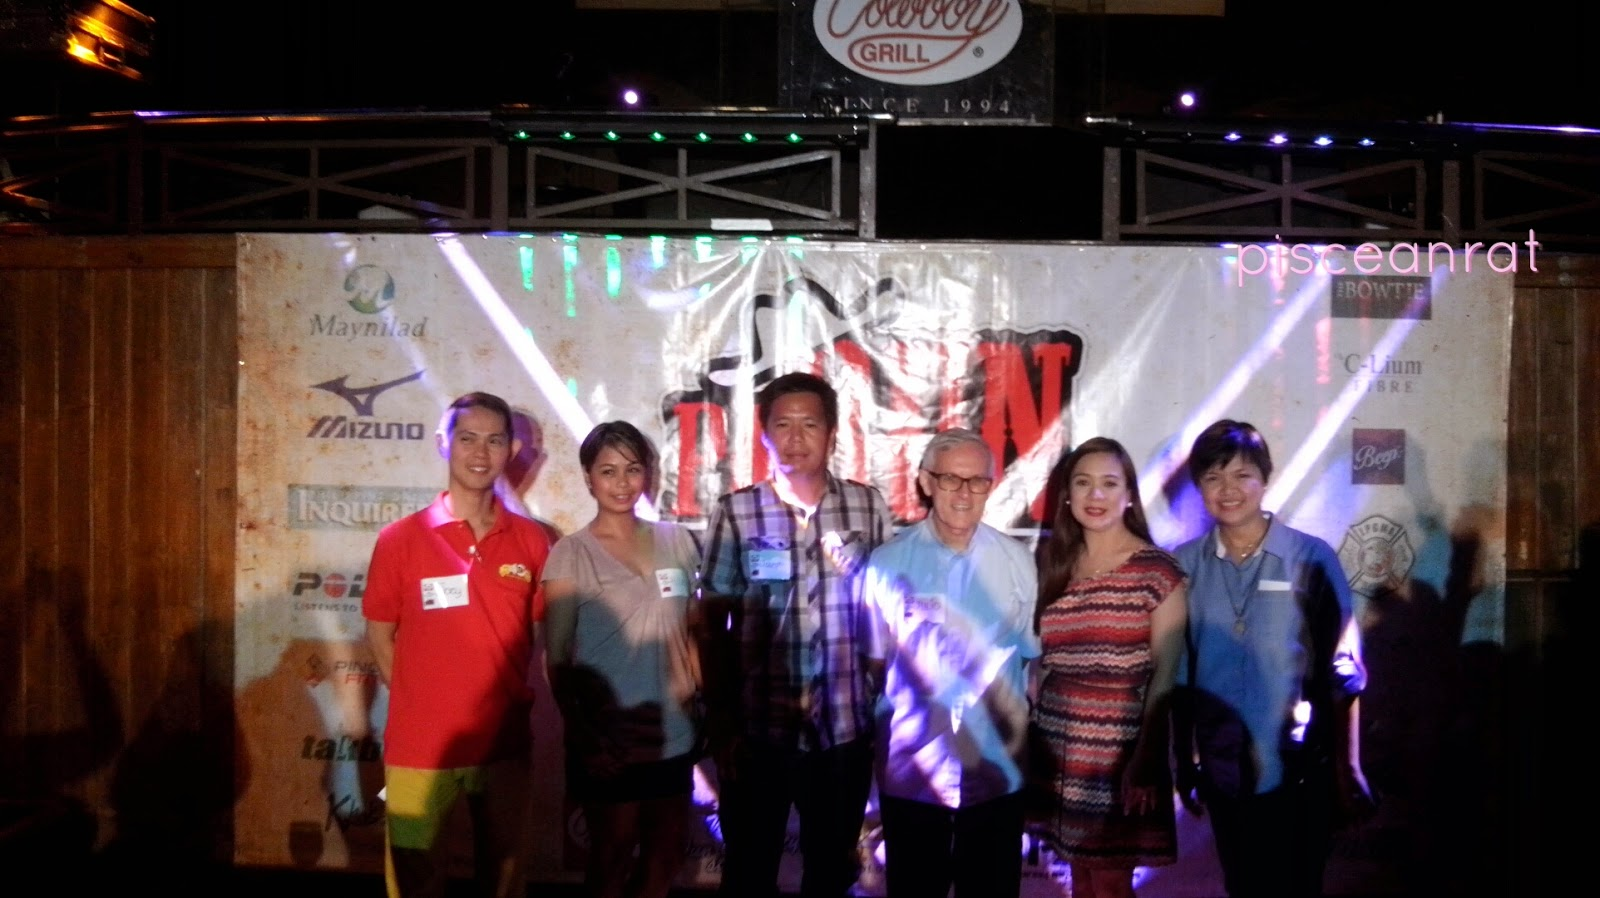 L-R: Joey of Cowboy Grill, Allen and Joseph of PAR, Fr. Julio of Cottolengo Filipino, Ms. Marianne and Jinky of CG.